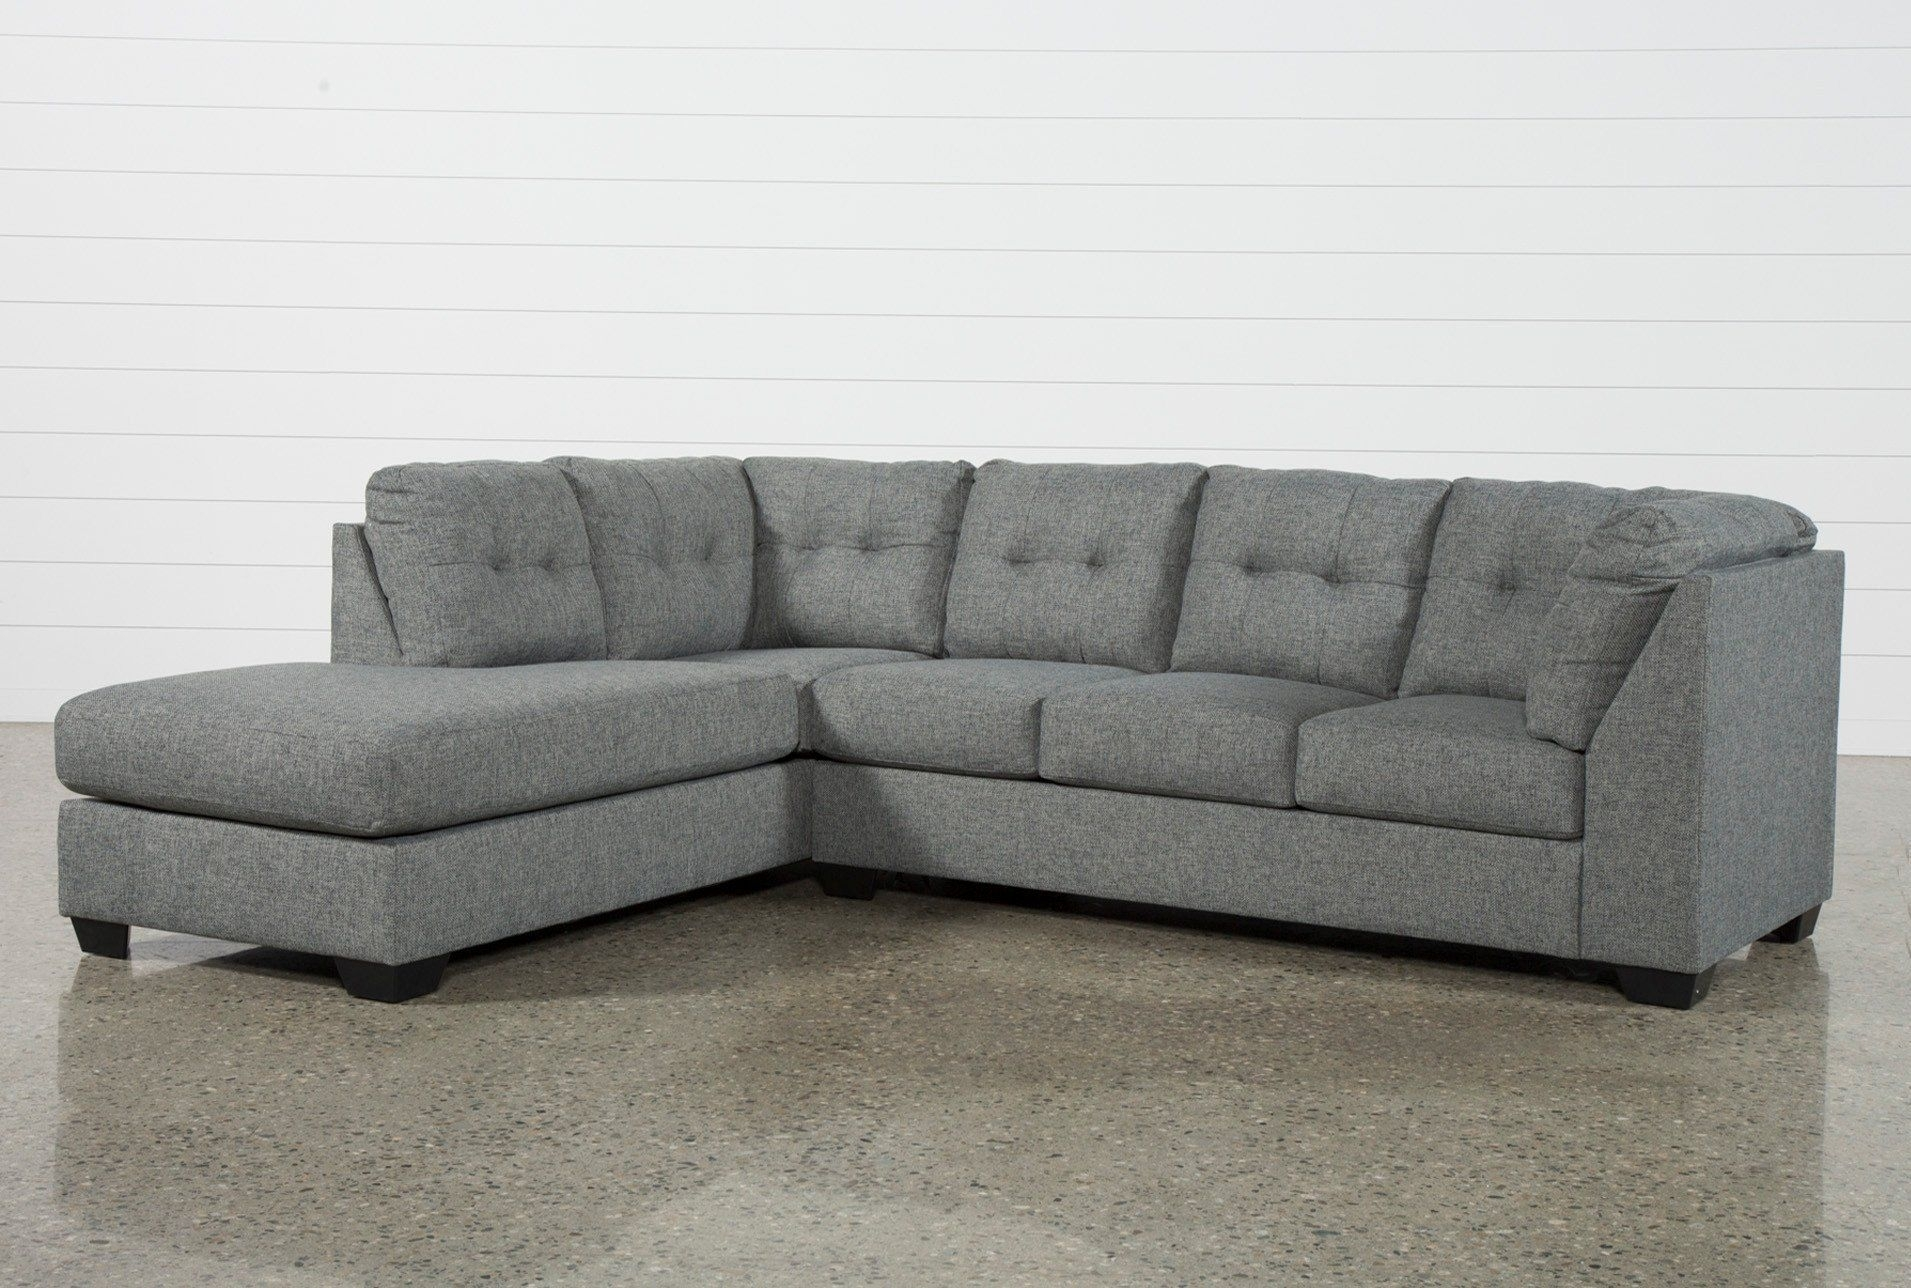 Cosmos Grey 2 Piece Sectional W/laf Chaise | Quilling | Pinterest in Haven Blue Steel 3 Piece Sectionals (Image 7 of 30)